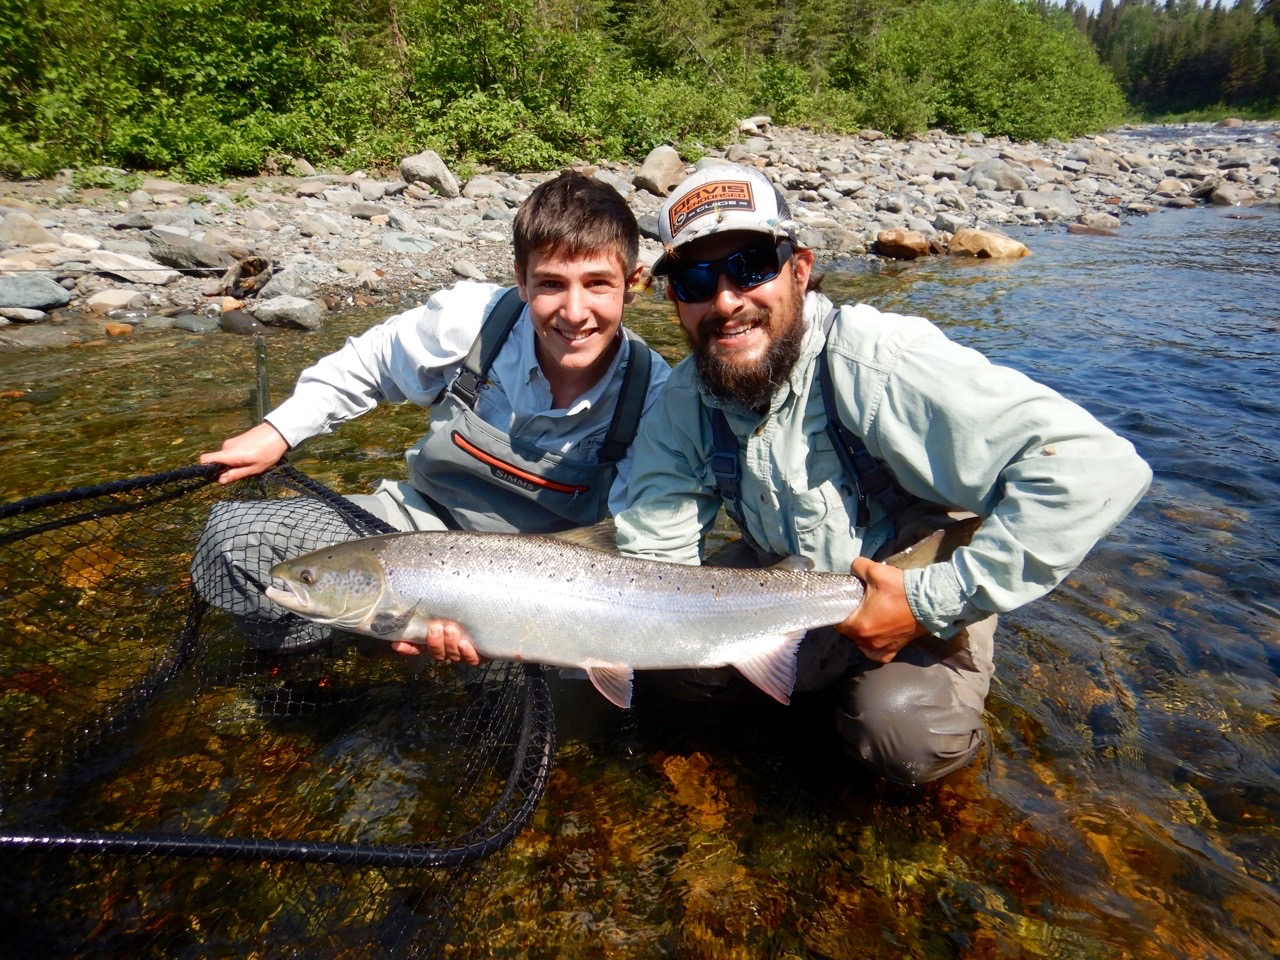 Jerome Letourneau is quickly becoming a great salmon angler, this is his second season at Salmon Lodge and he keeps getting better and better, congratulations Jerome!